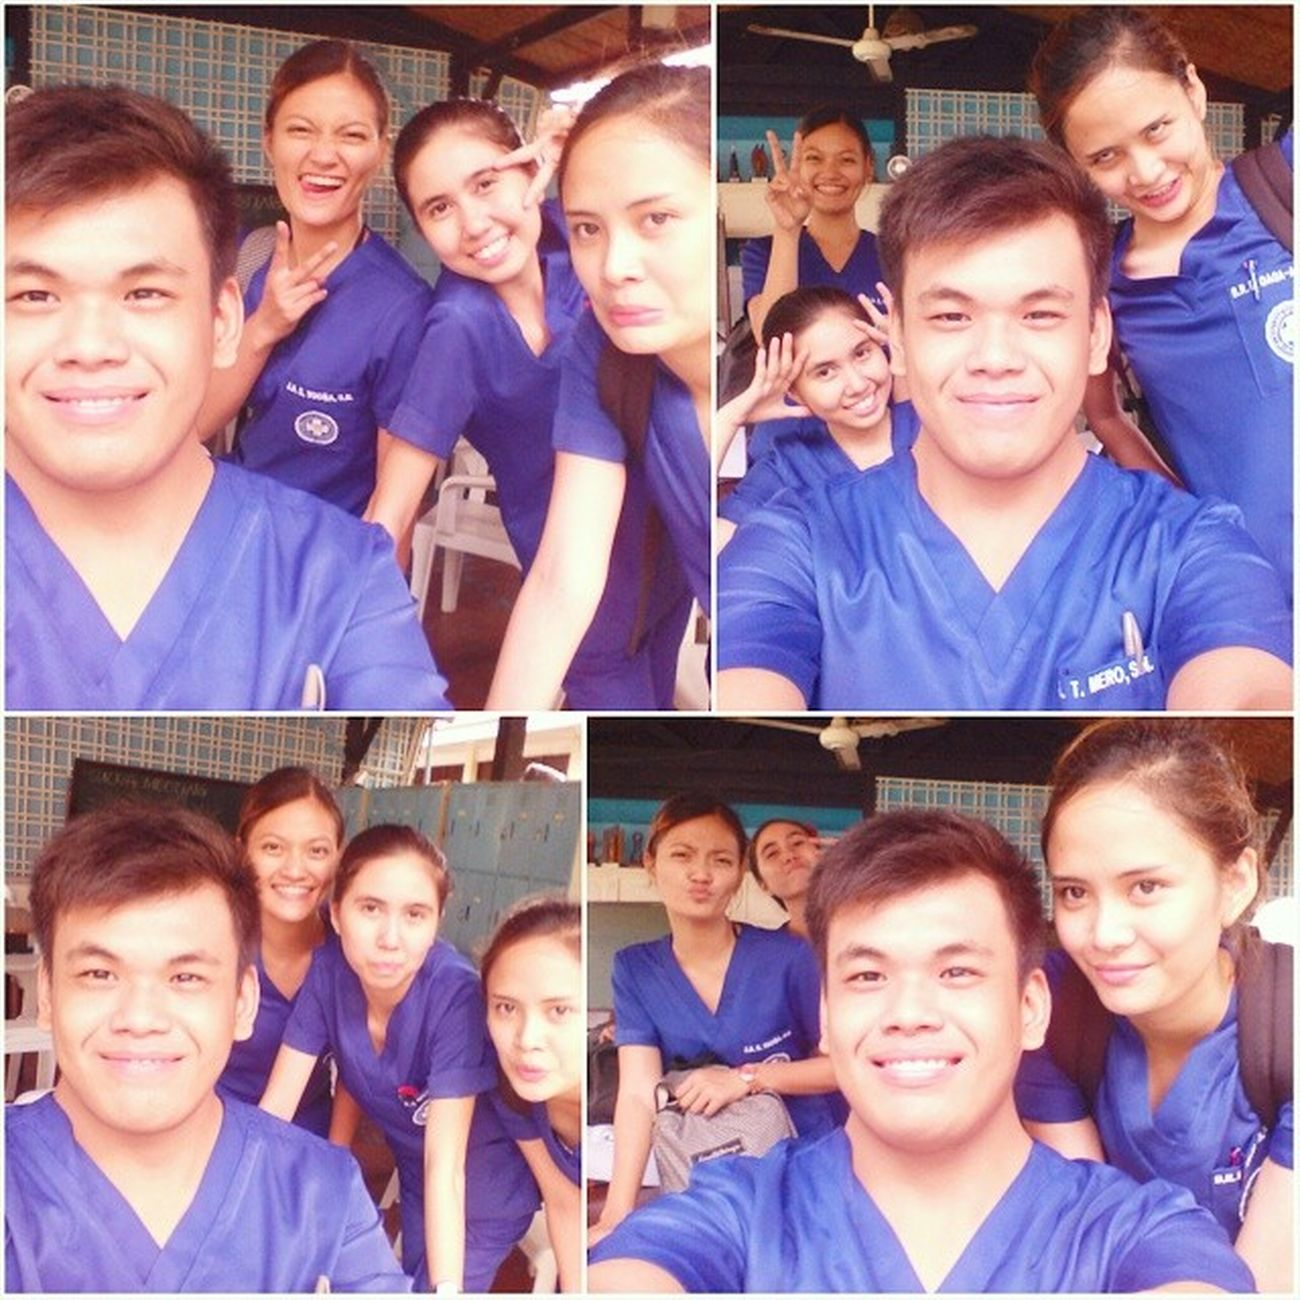 After duty... Hahaha Haggard Studentnurse SUCN SUMC